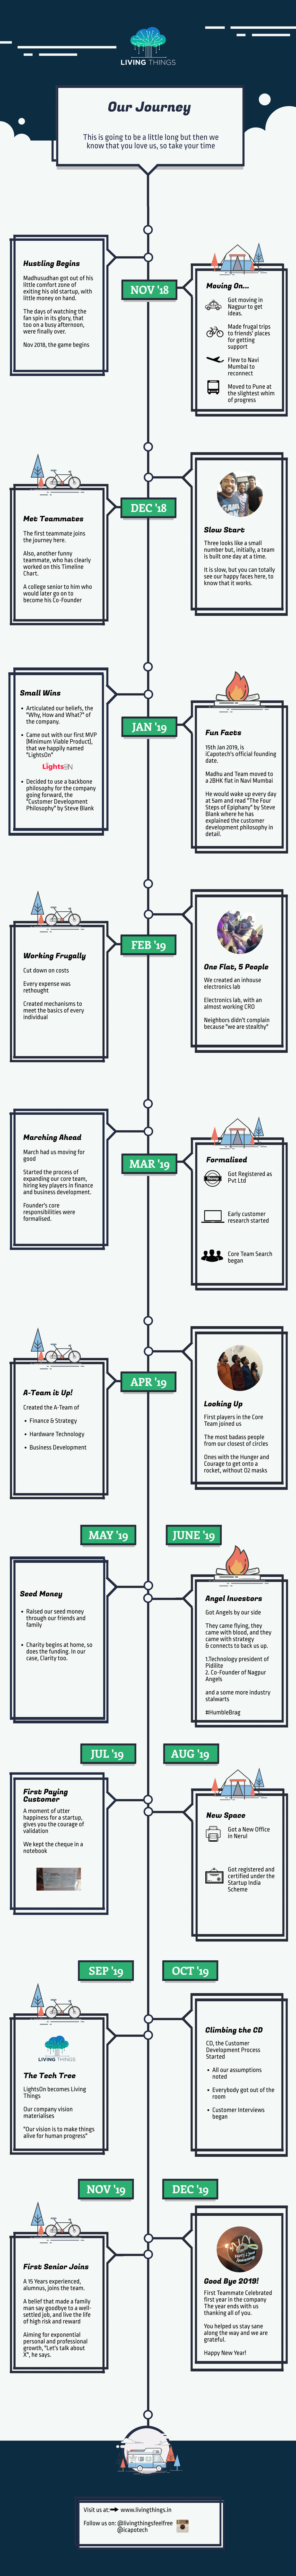 Living Things Journey to 2020 Infographic